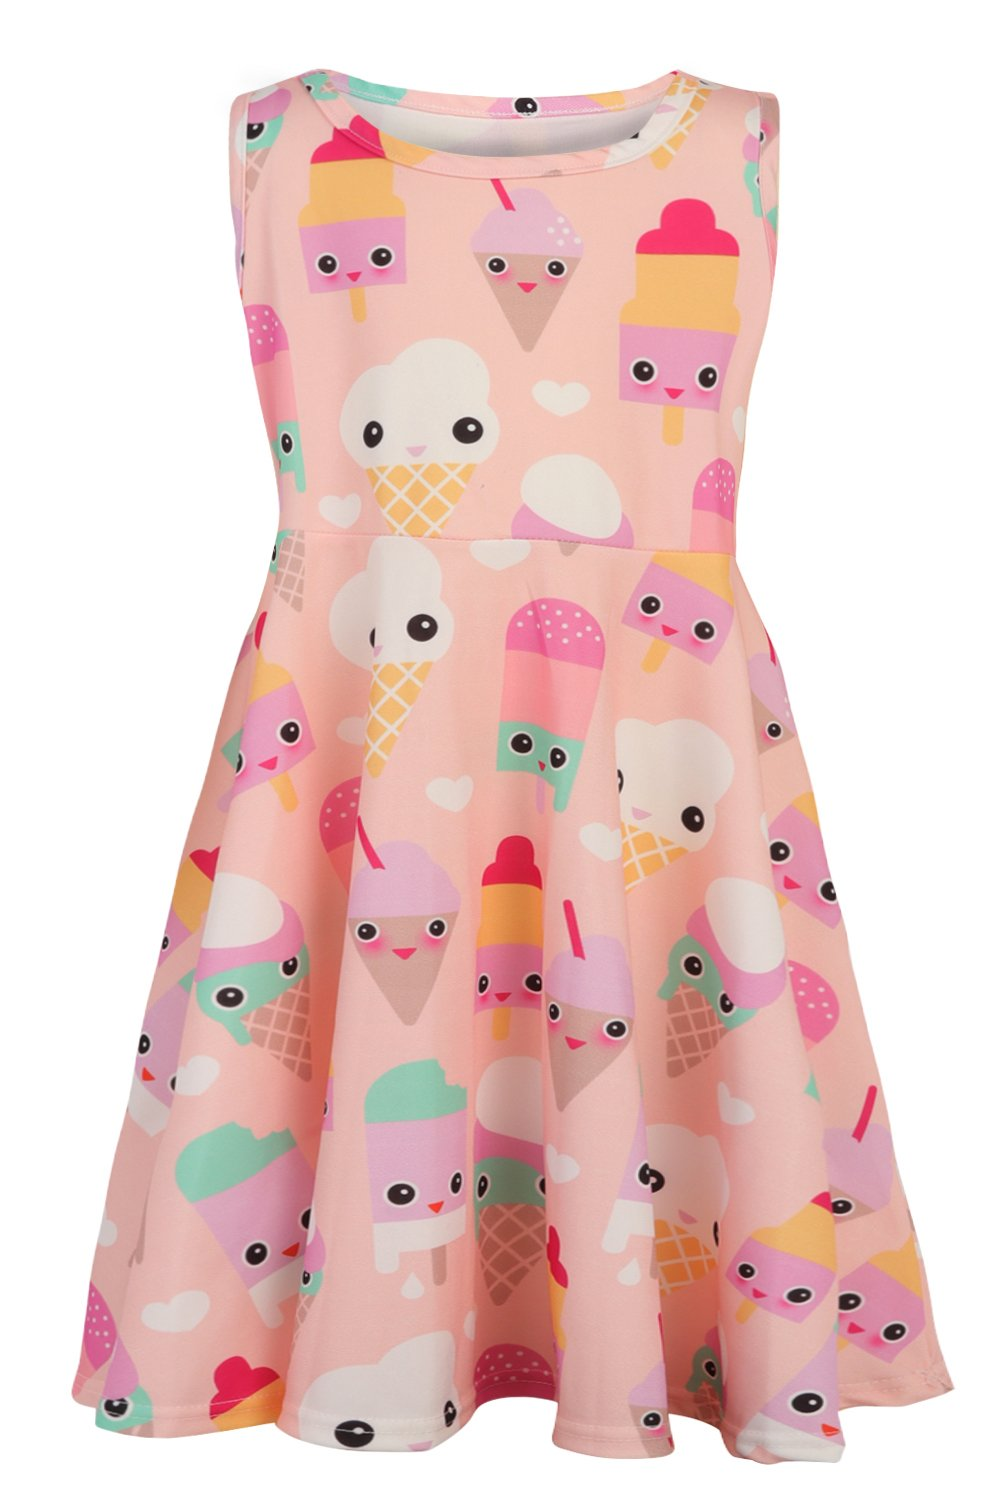 Girl Sundresses Kid Polyester Applique ice Lolly Dress Clothes Slim Fit Crewneck Dress Popsicle Print 6 yrs Years Old (Ice Cream, M)